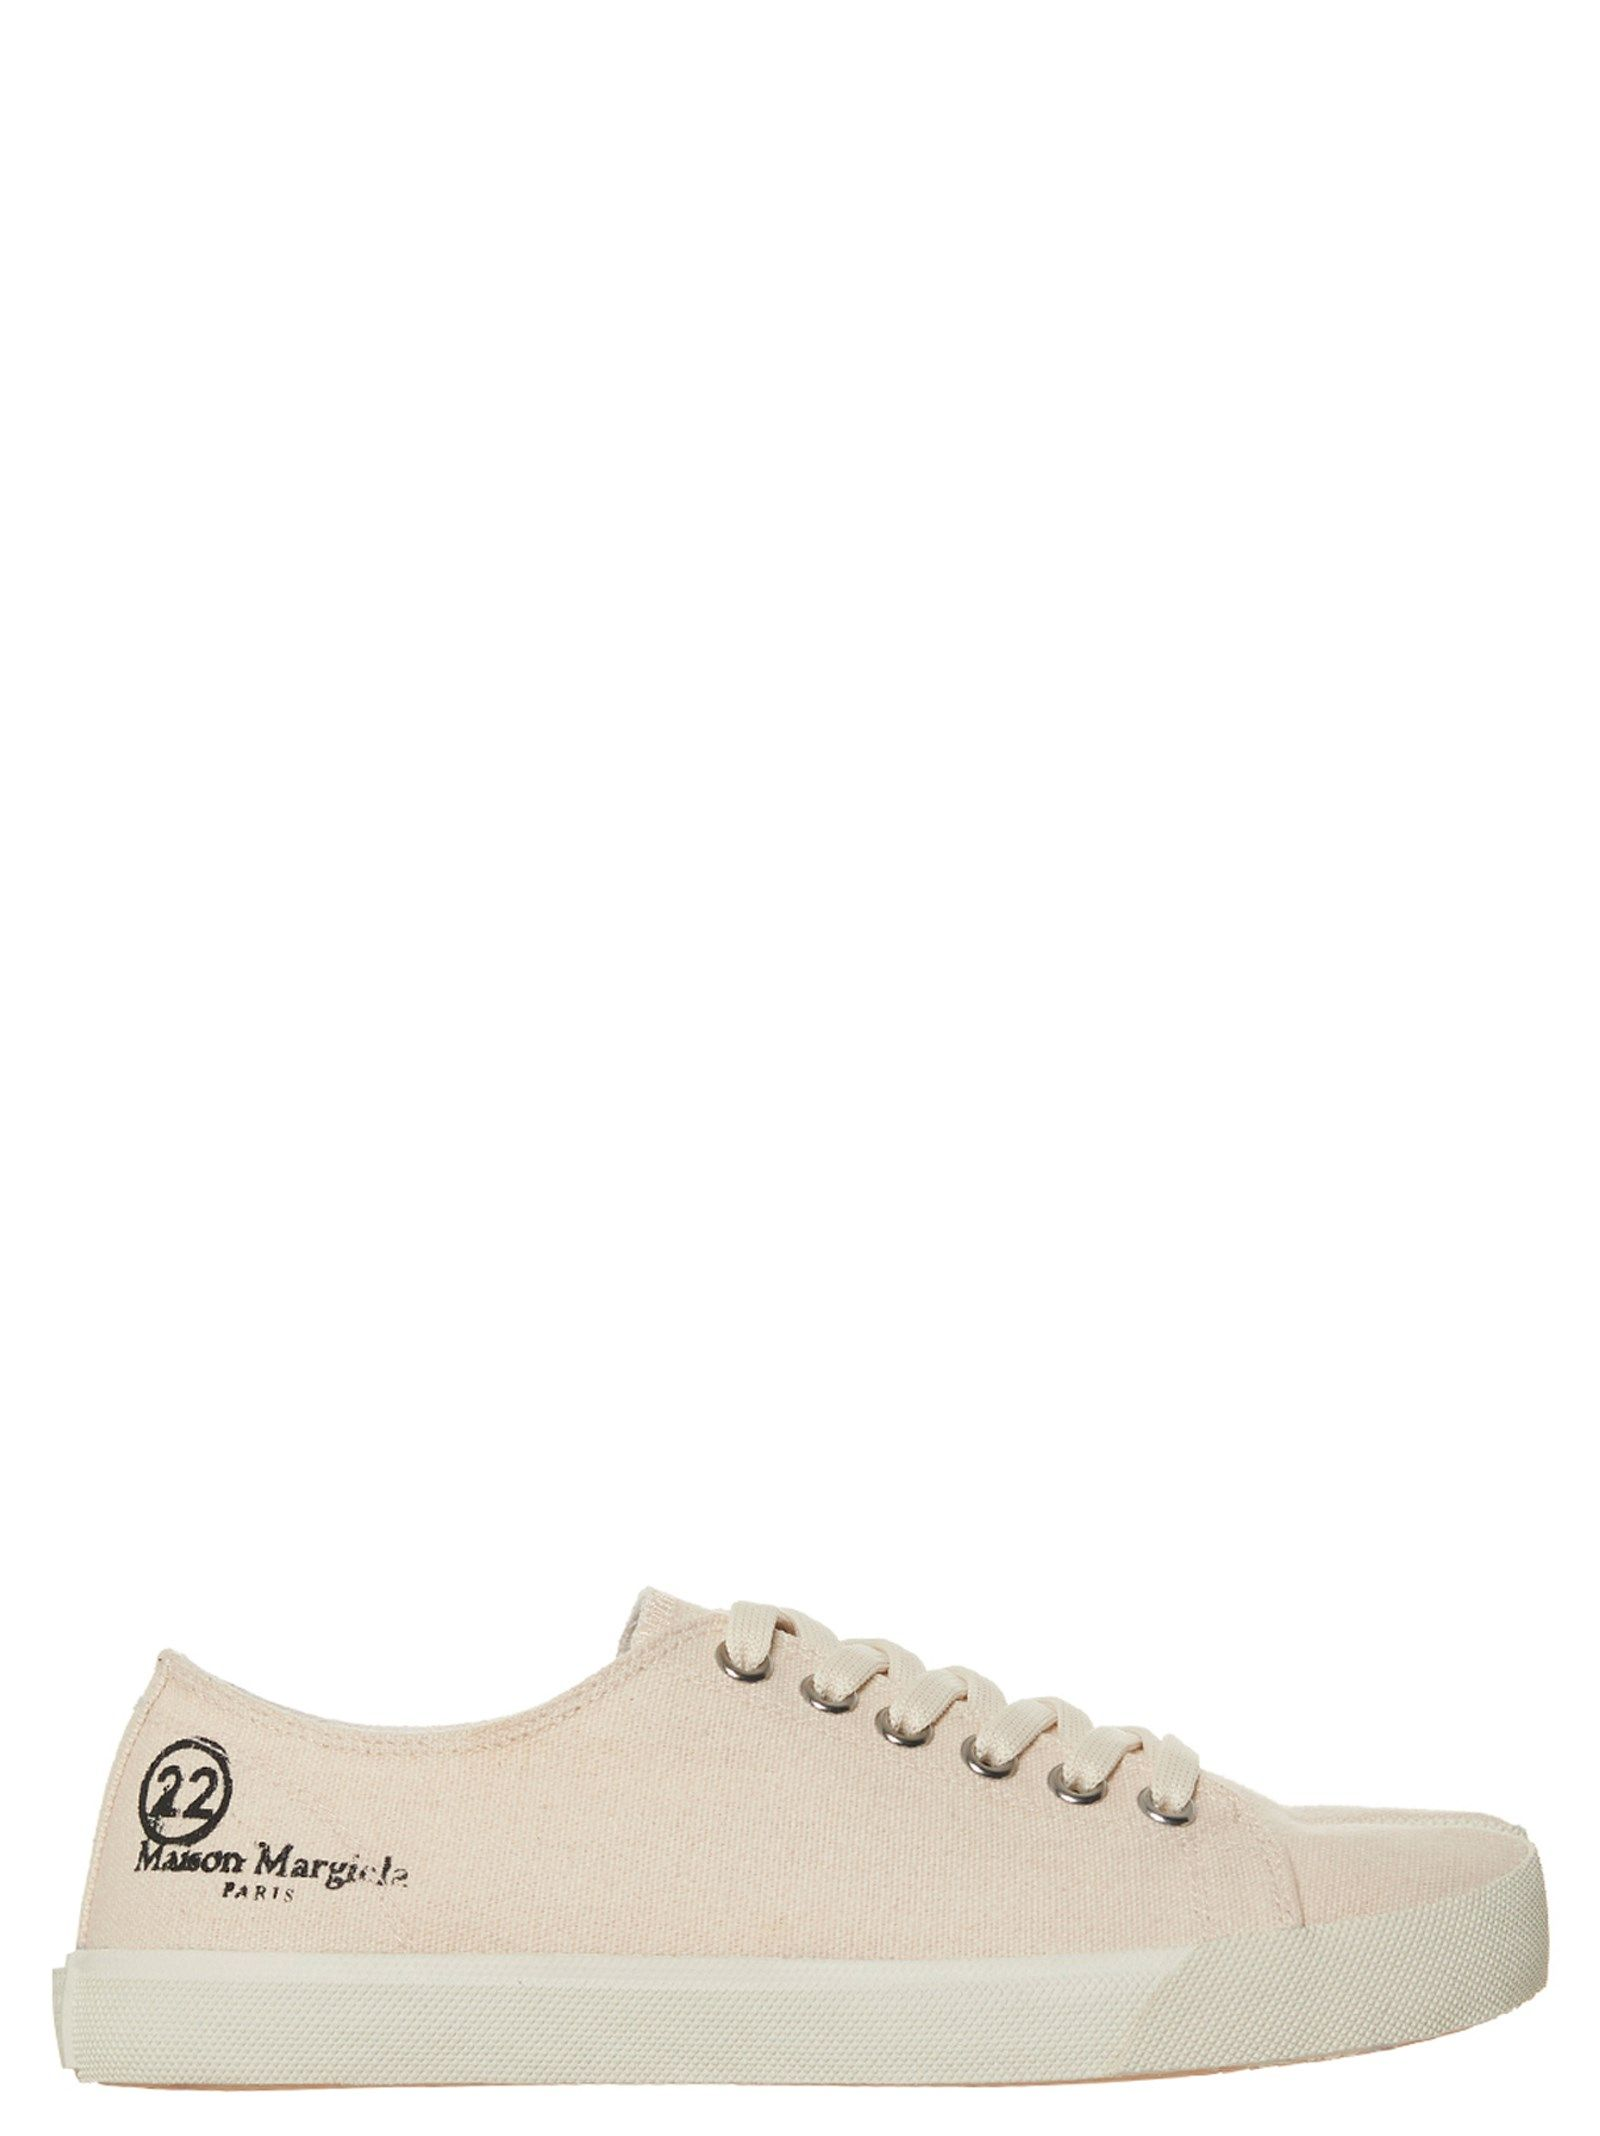 Maison Margiela Canvases MAISON MARGIELA WOMEN'S S58WS0110P4044T8041 WHITE OTHER MATERIALS SNEAKERS